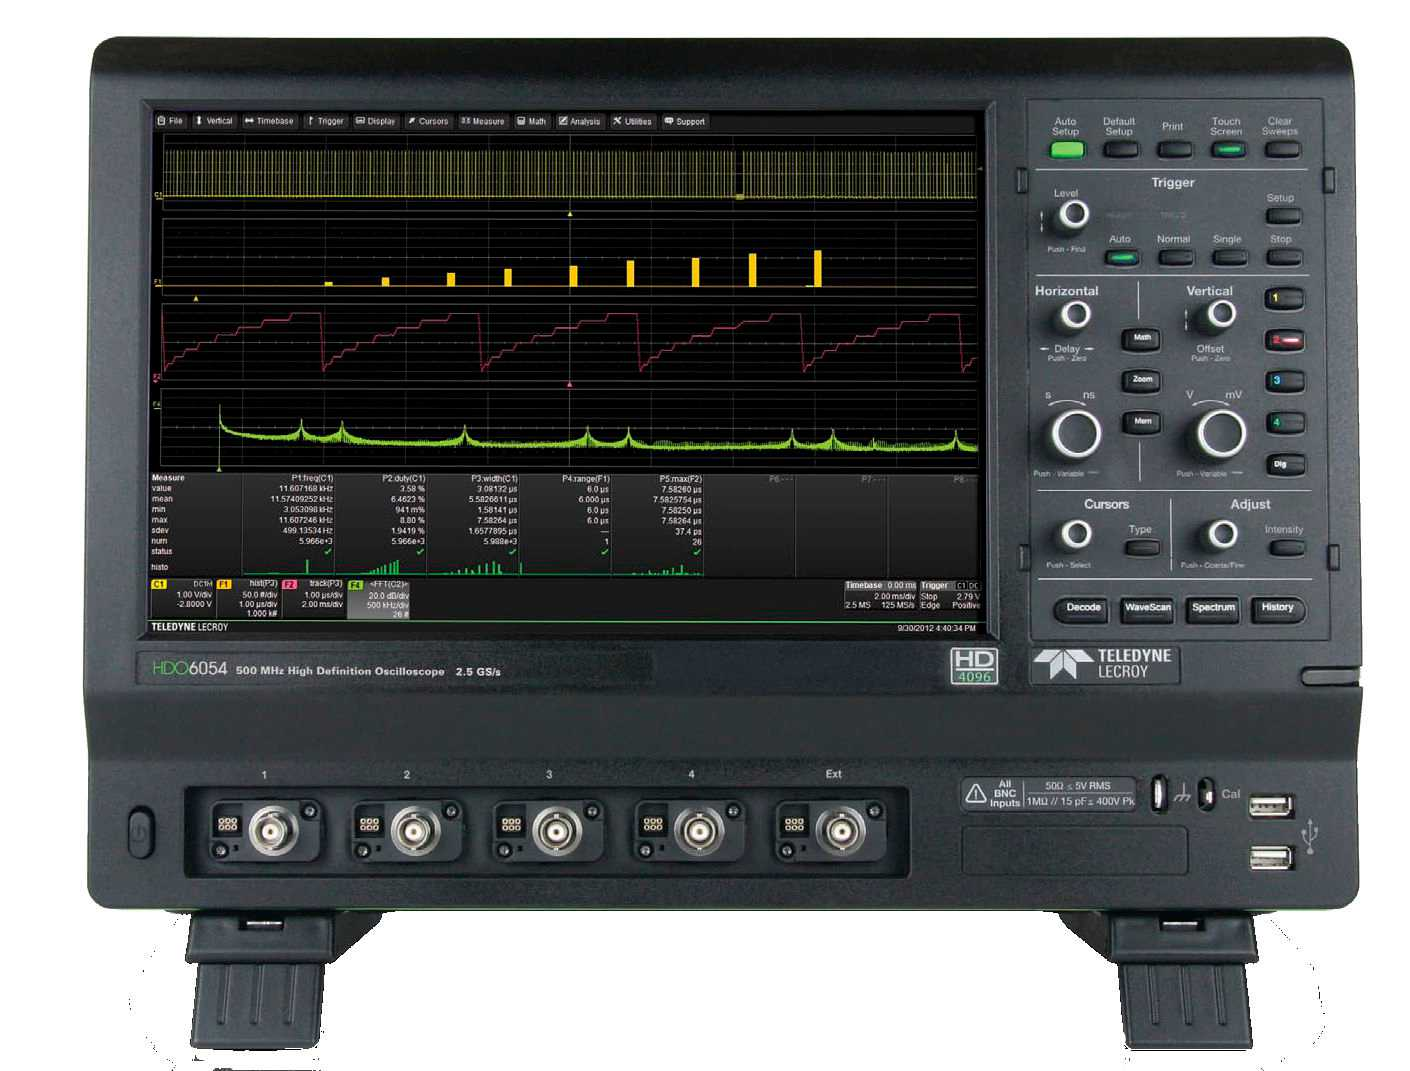 "Osciloscoape Teledyne LeCroy HDO6104A-MS - 1 GHz, 2.5 GS/s, 4+16 Ch, 50 Mpts/Ch 12-bit HD Mixed Signal Oscilloscope with 12.1"" WXGA Touch Display"